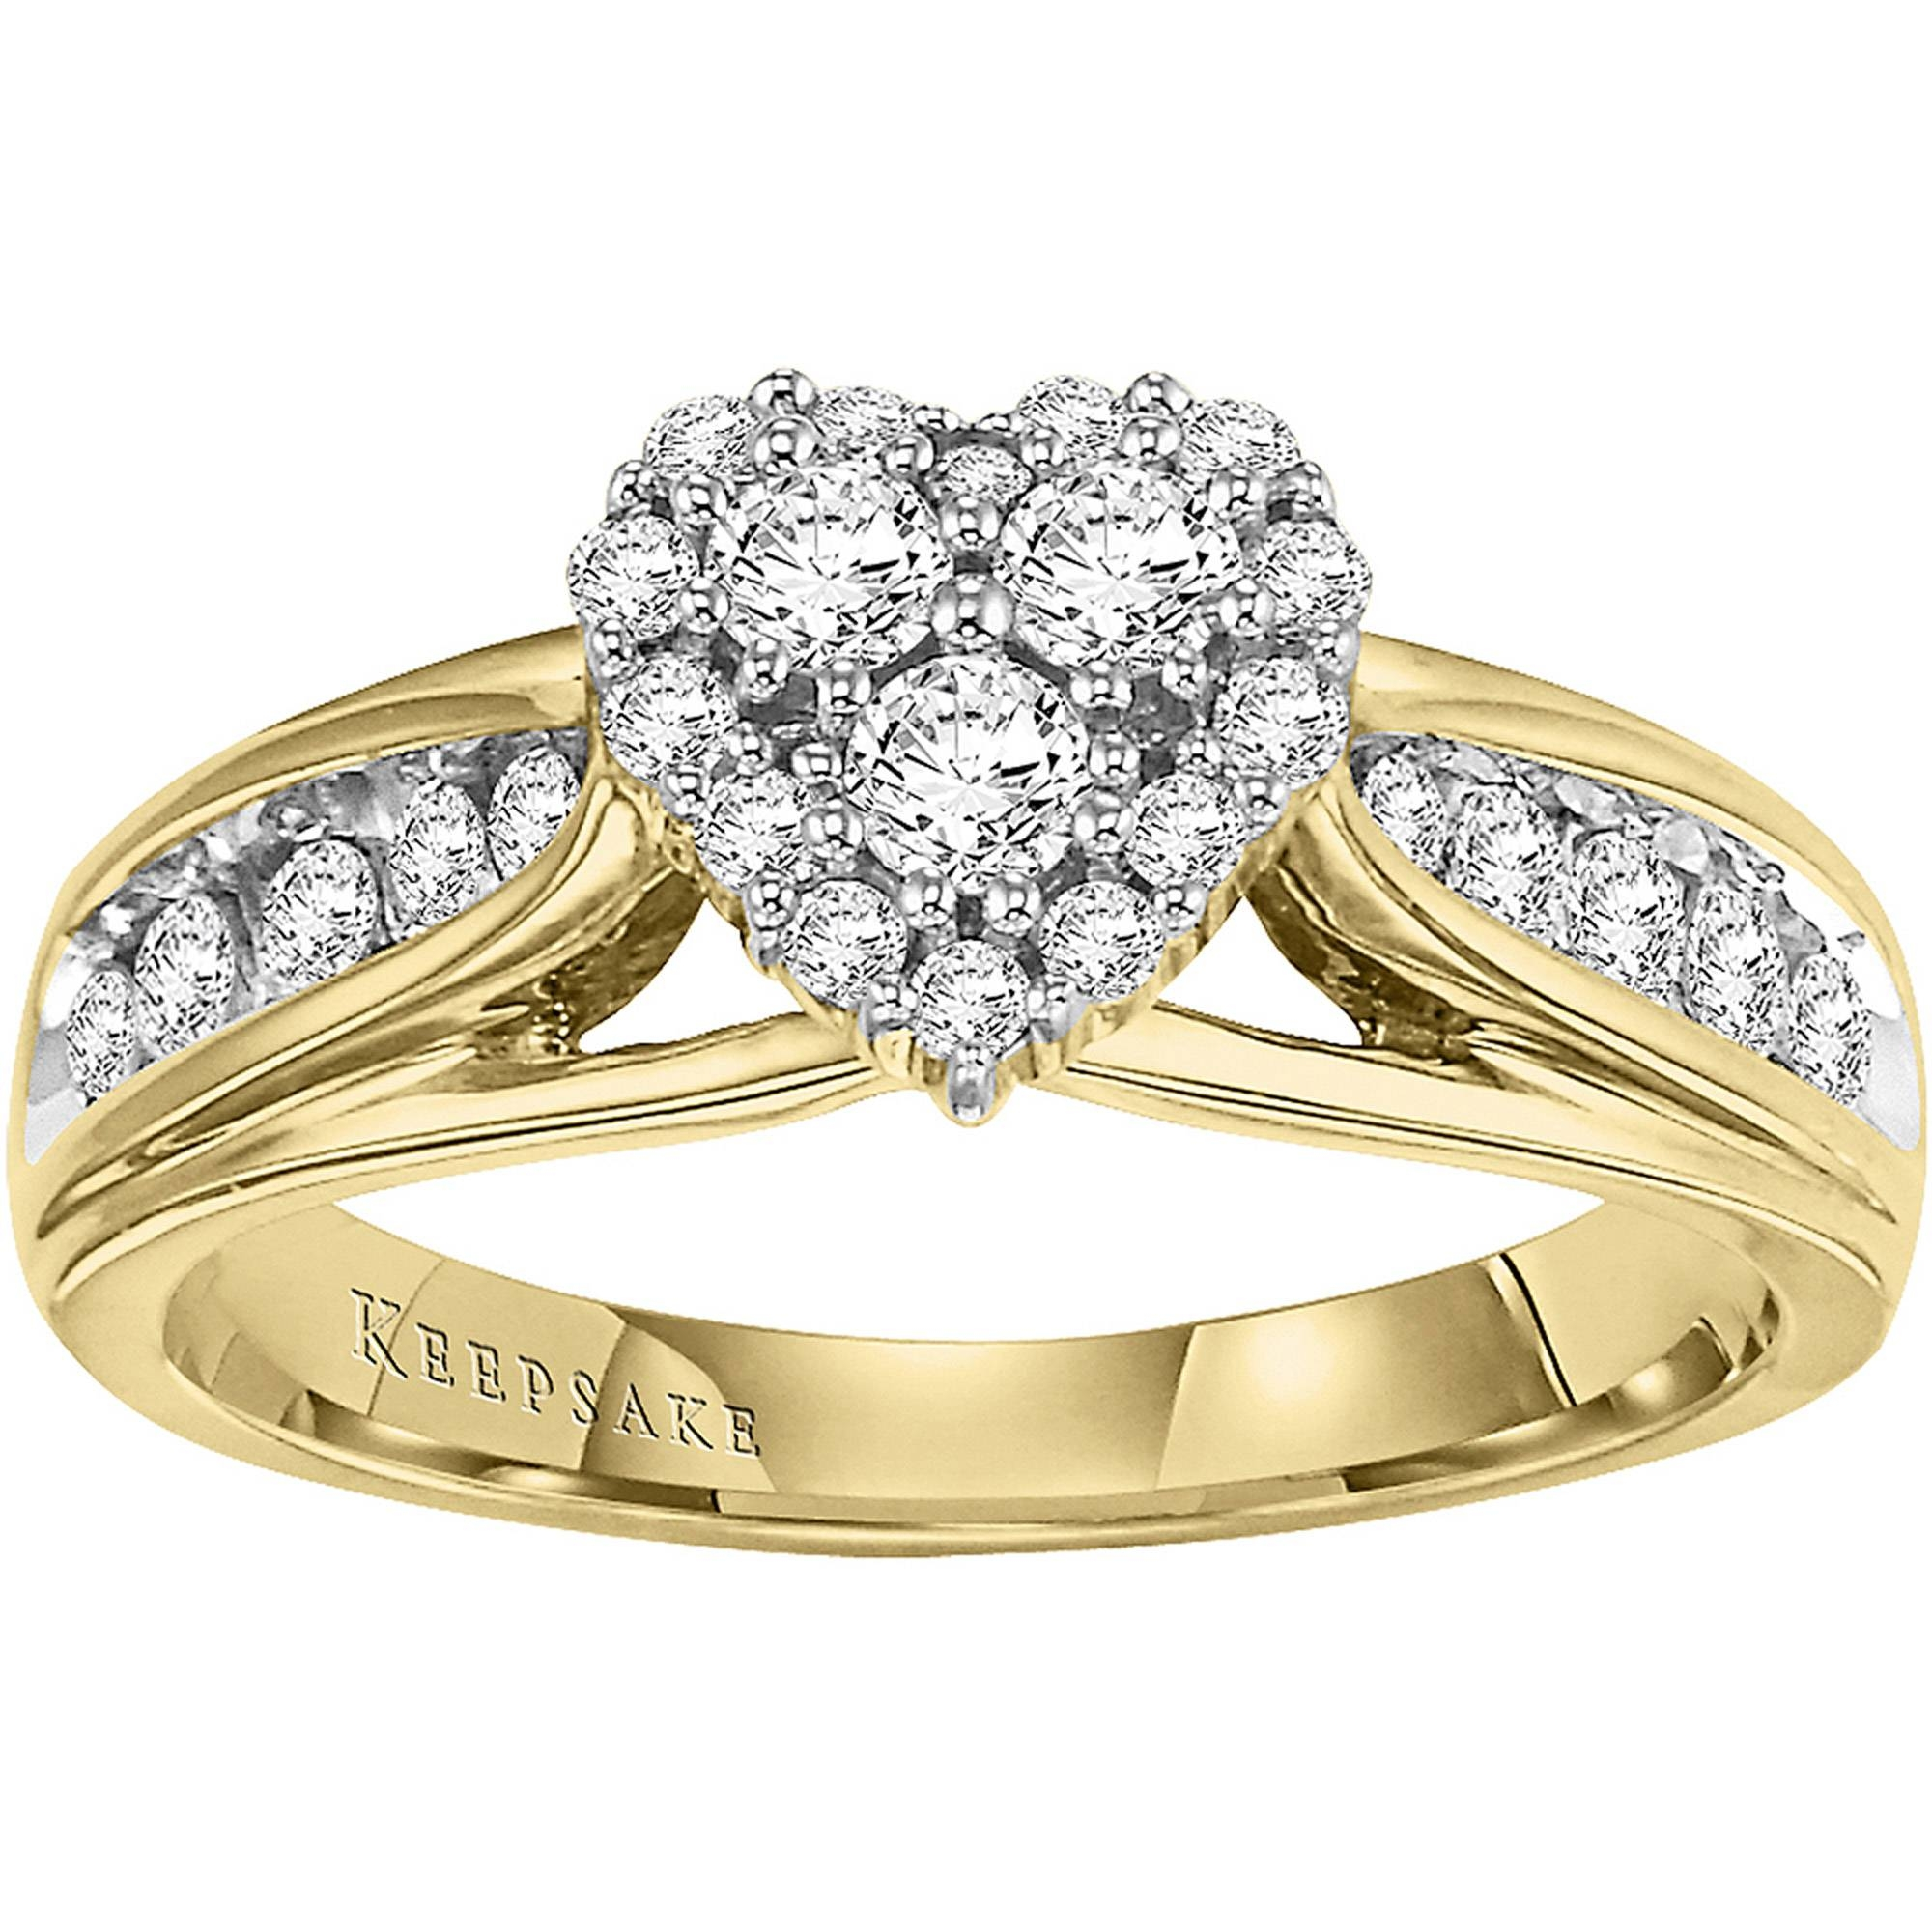 Certified Diamond Rings Inside Walmart Keepsake Engagement Rings (View 2 of 15)